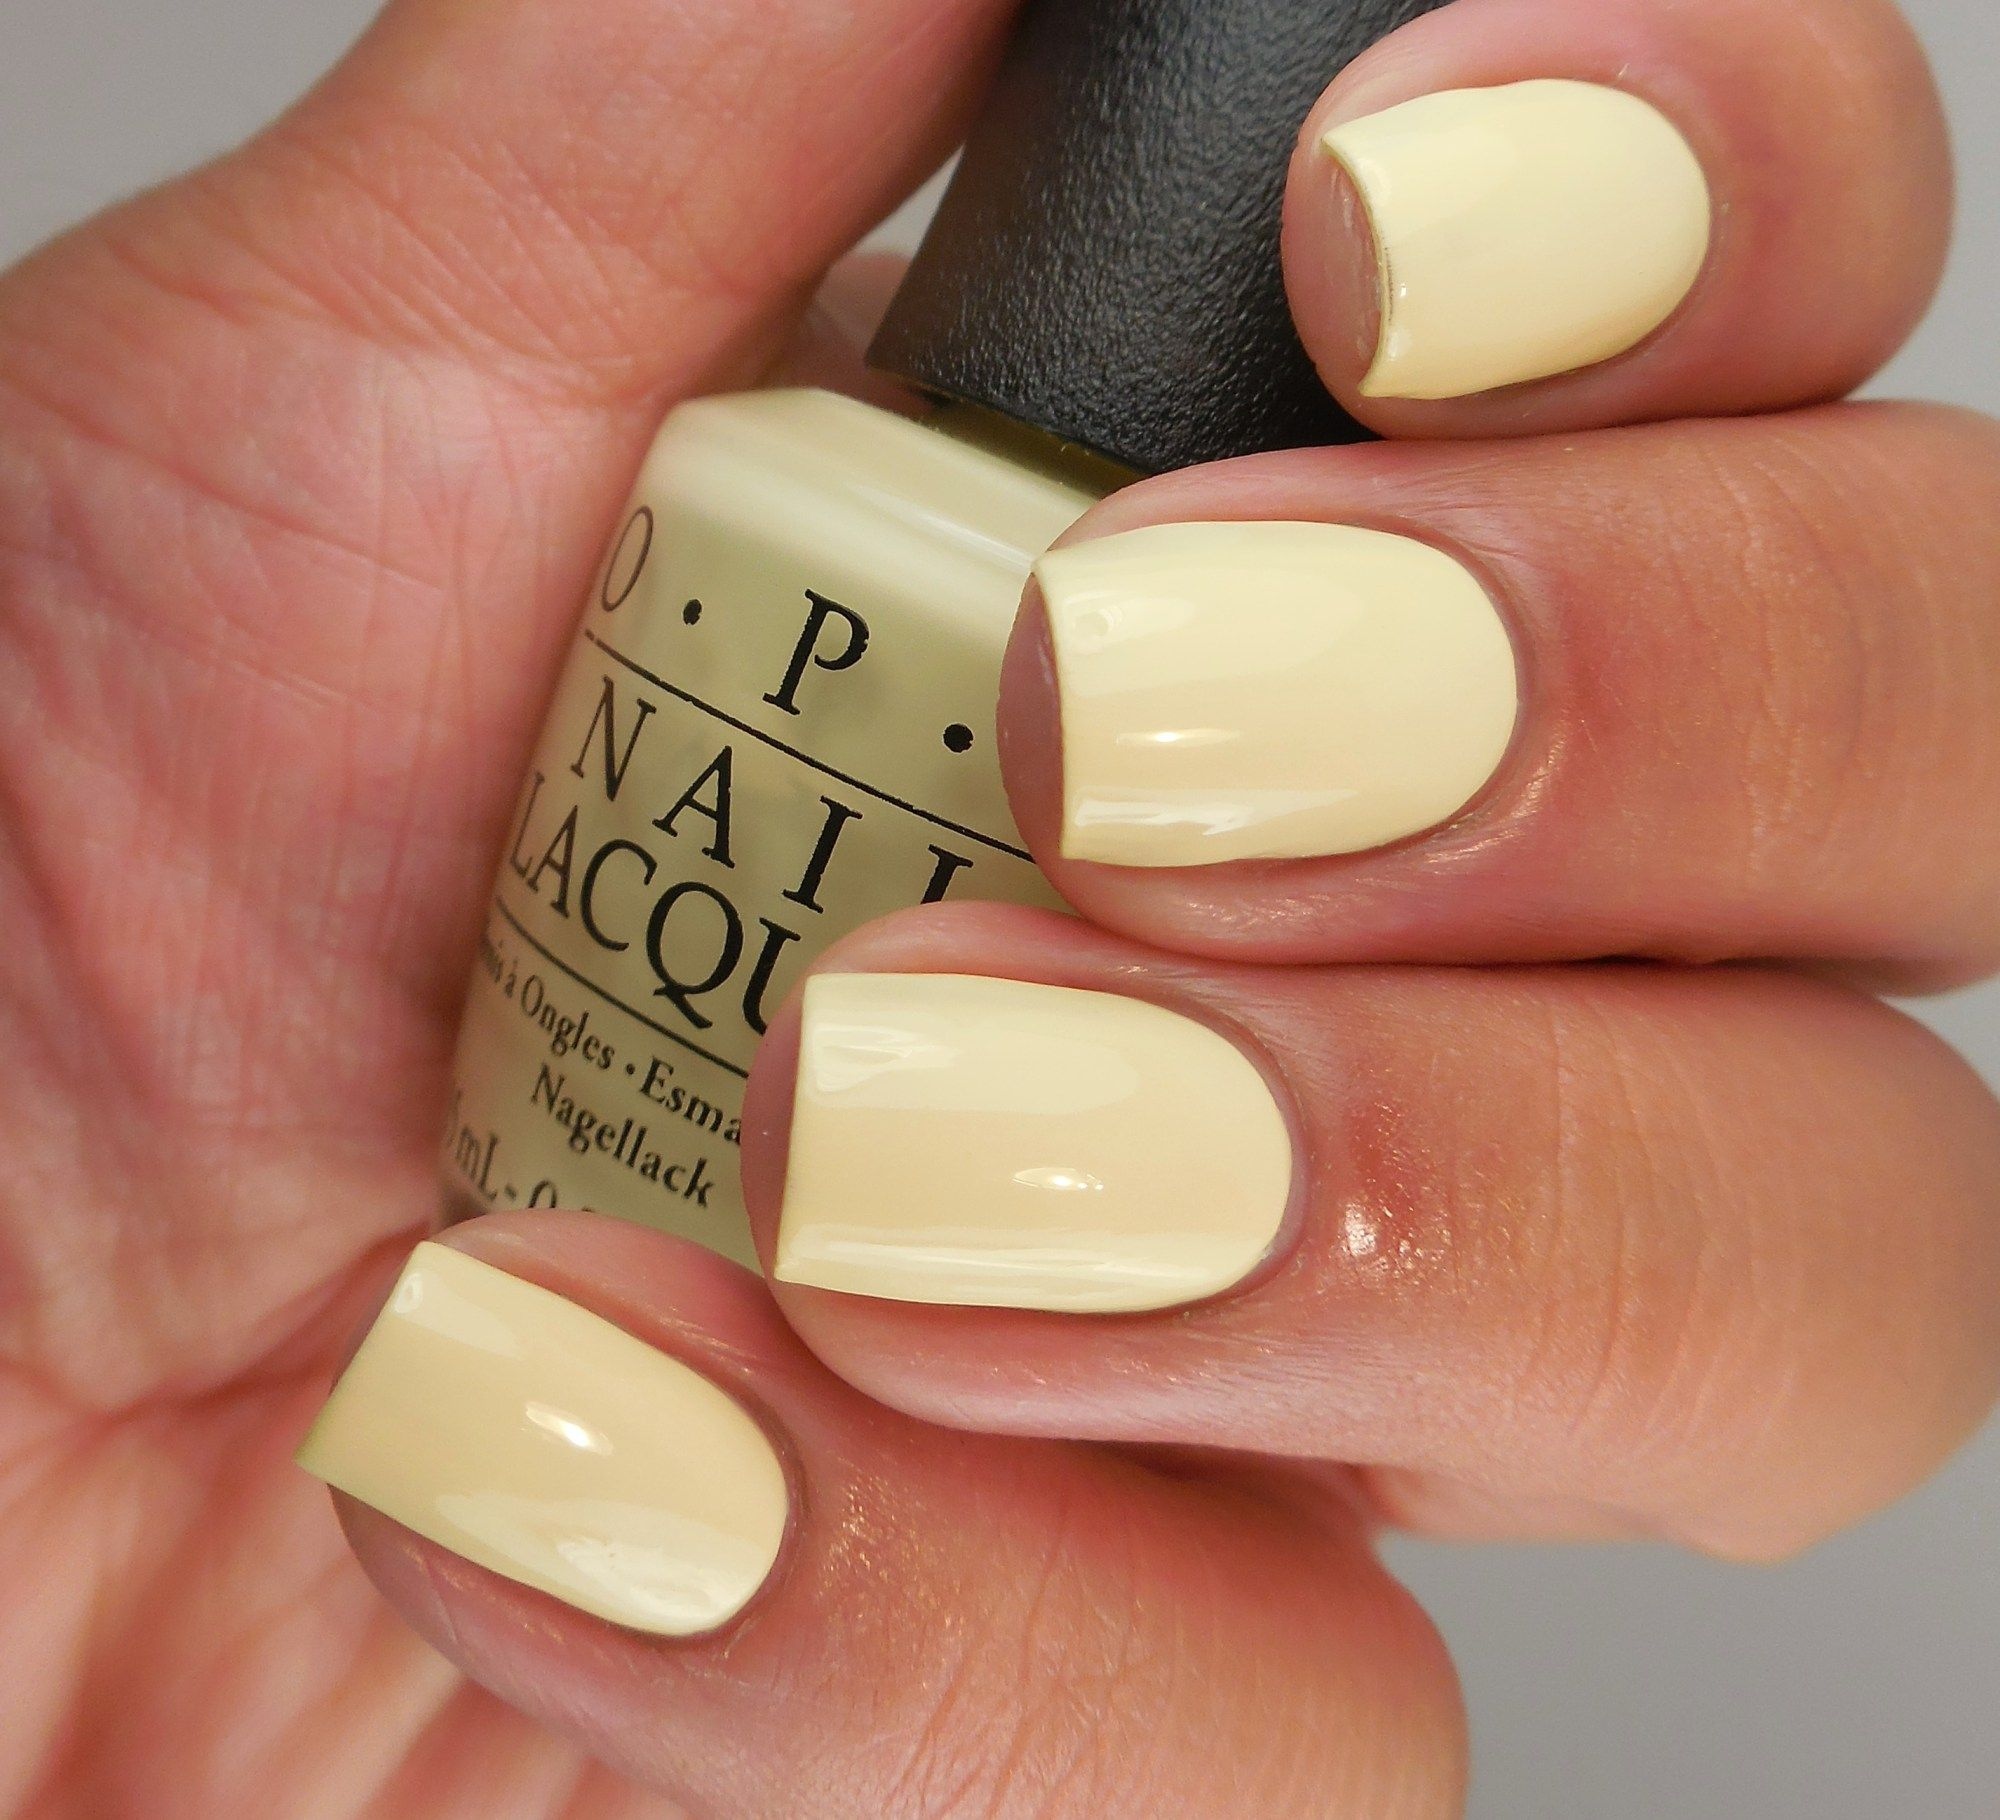 OPI One Chic Chick A Light Yellow Creme Nail Polish From The Soft Shades Collection 2016 Facebook Shorthaircutstyles Posts